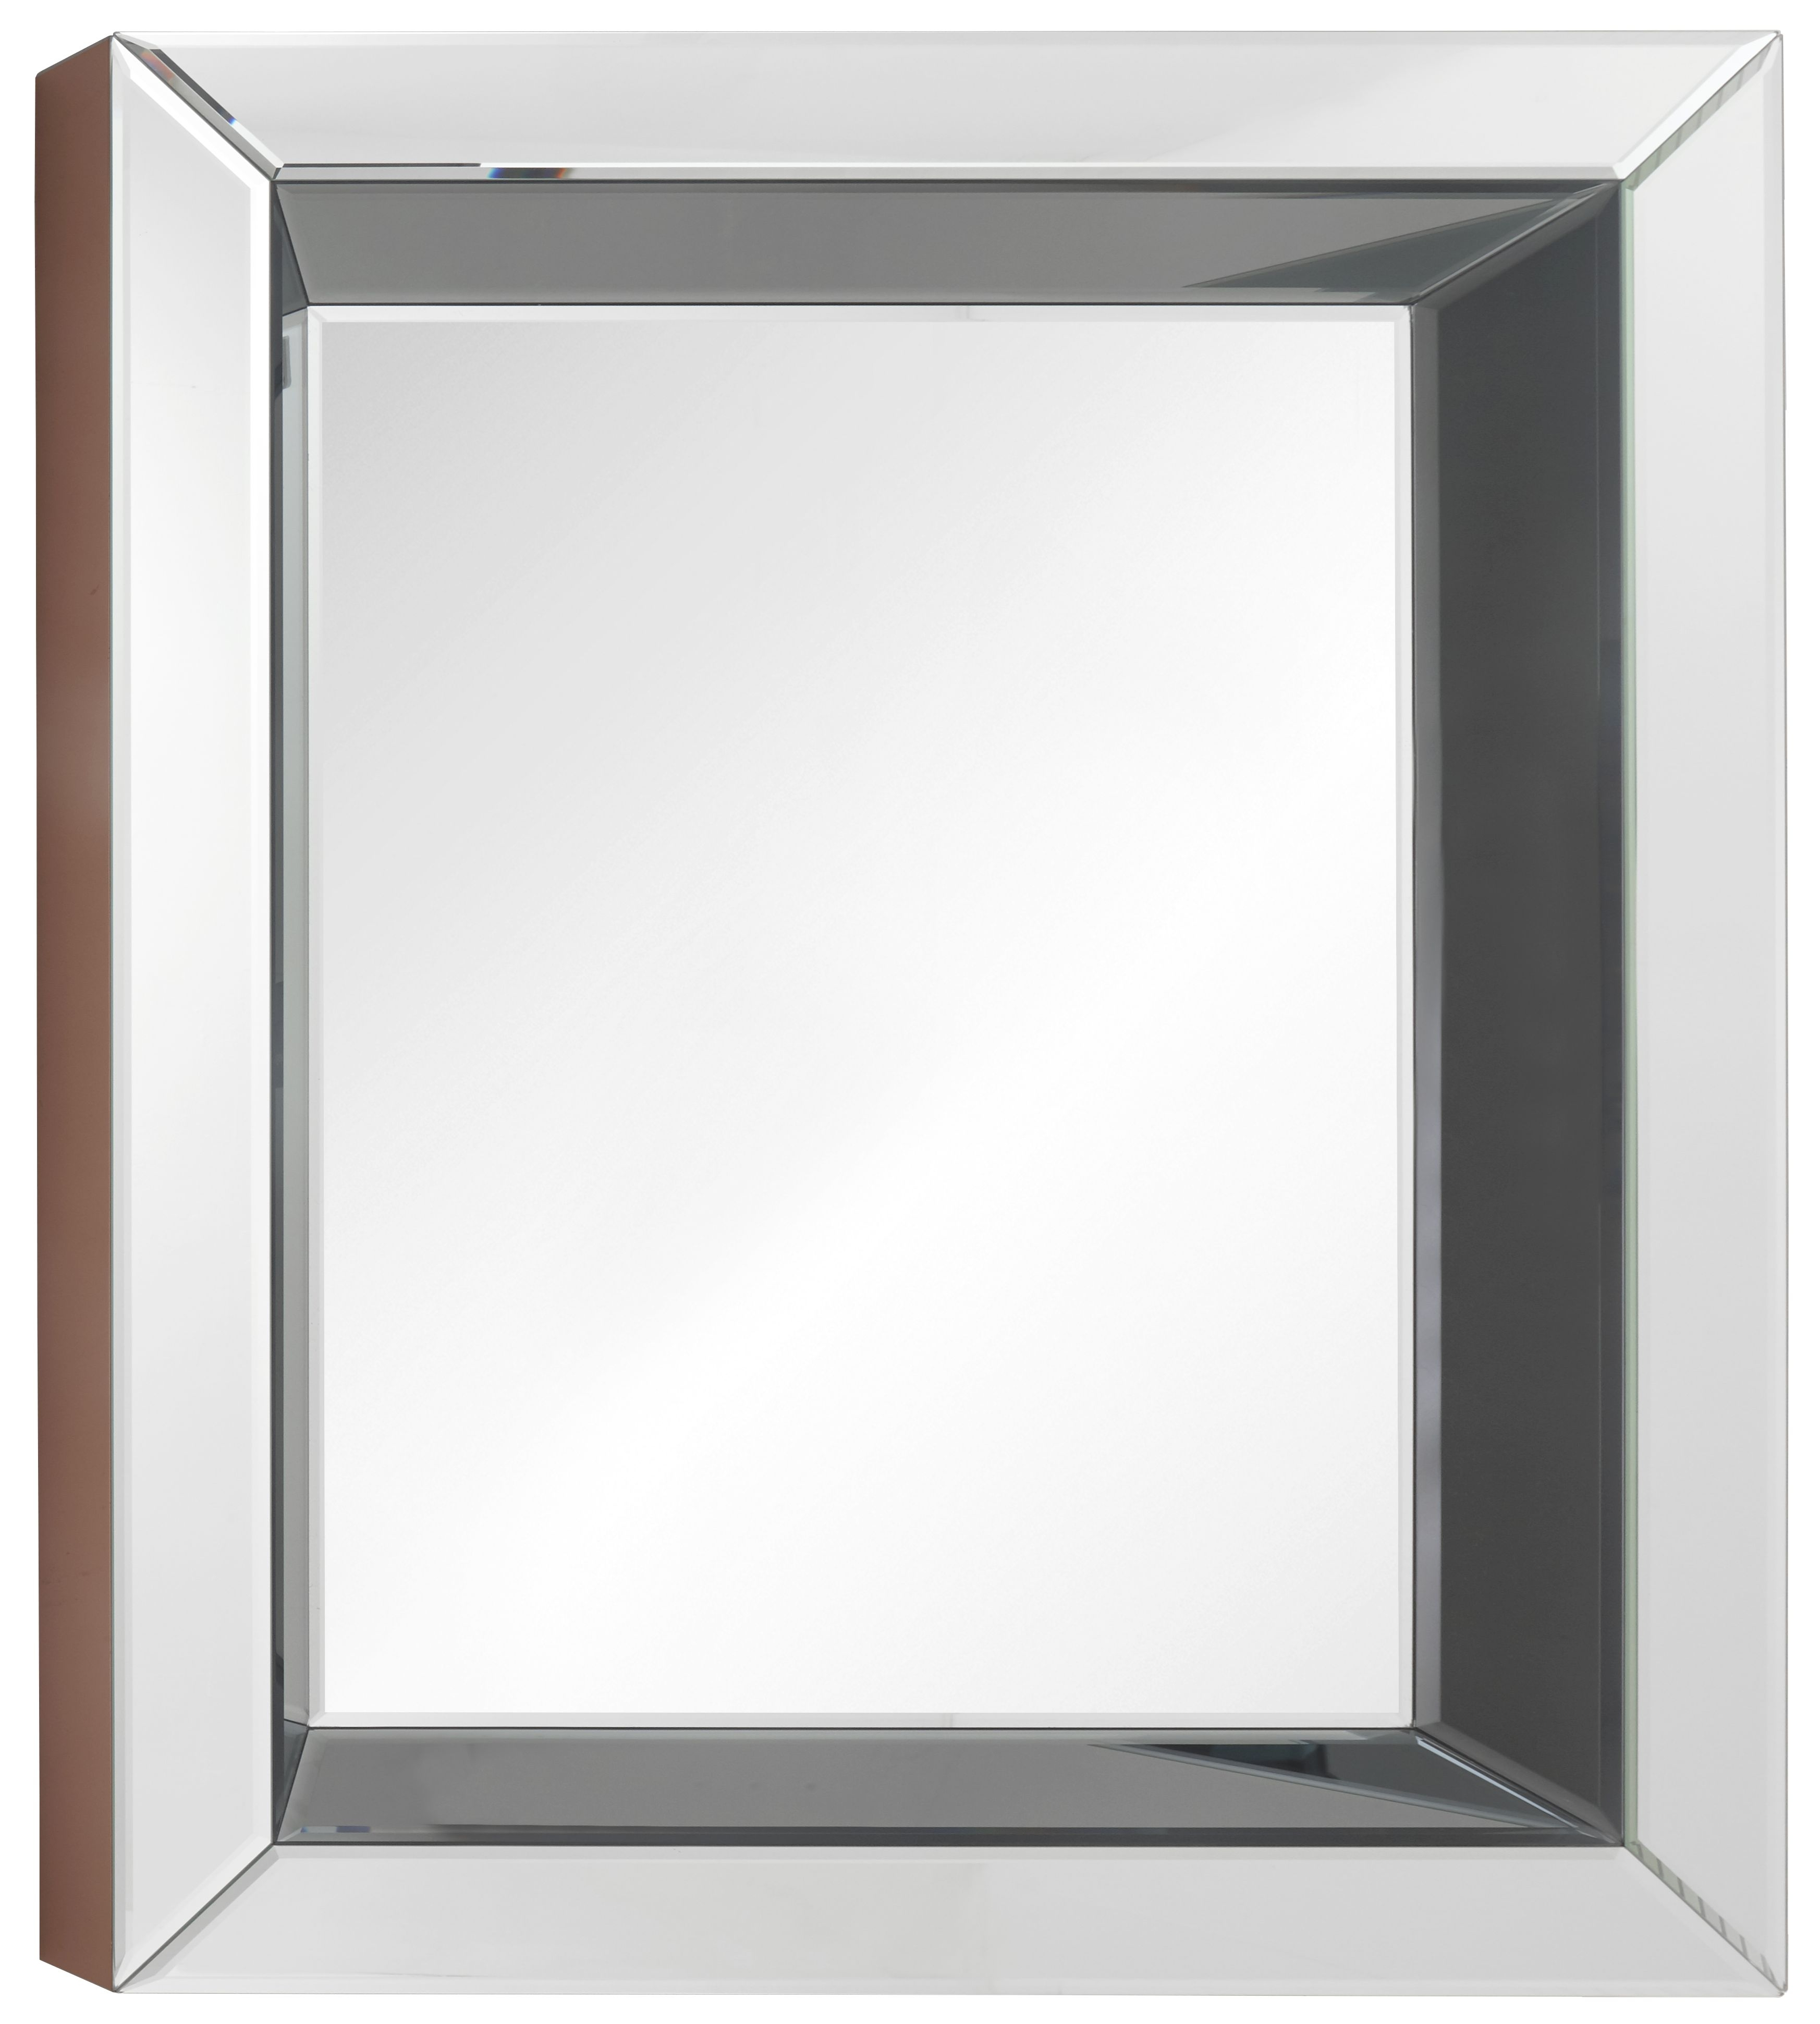 RV Astley Murano Rectangular Mirror - Grey and High Gloss Cooper 80cm x 100cm